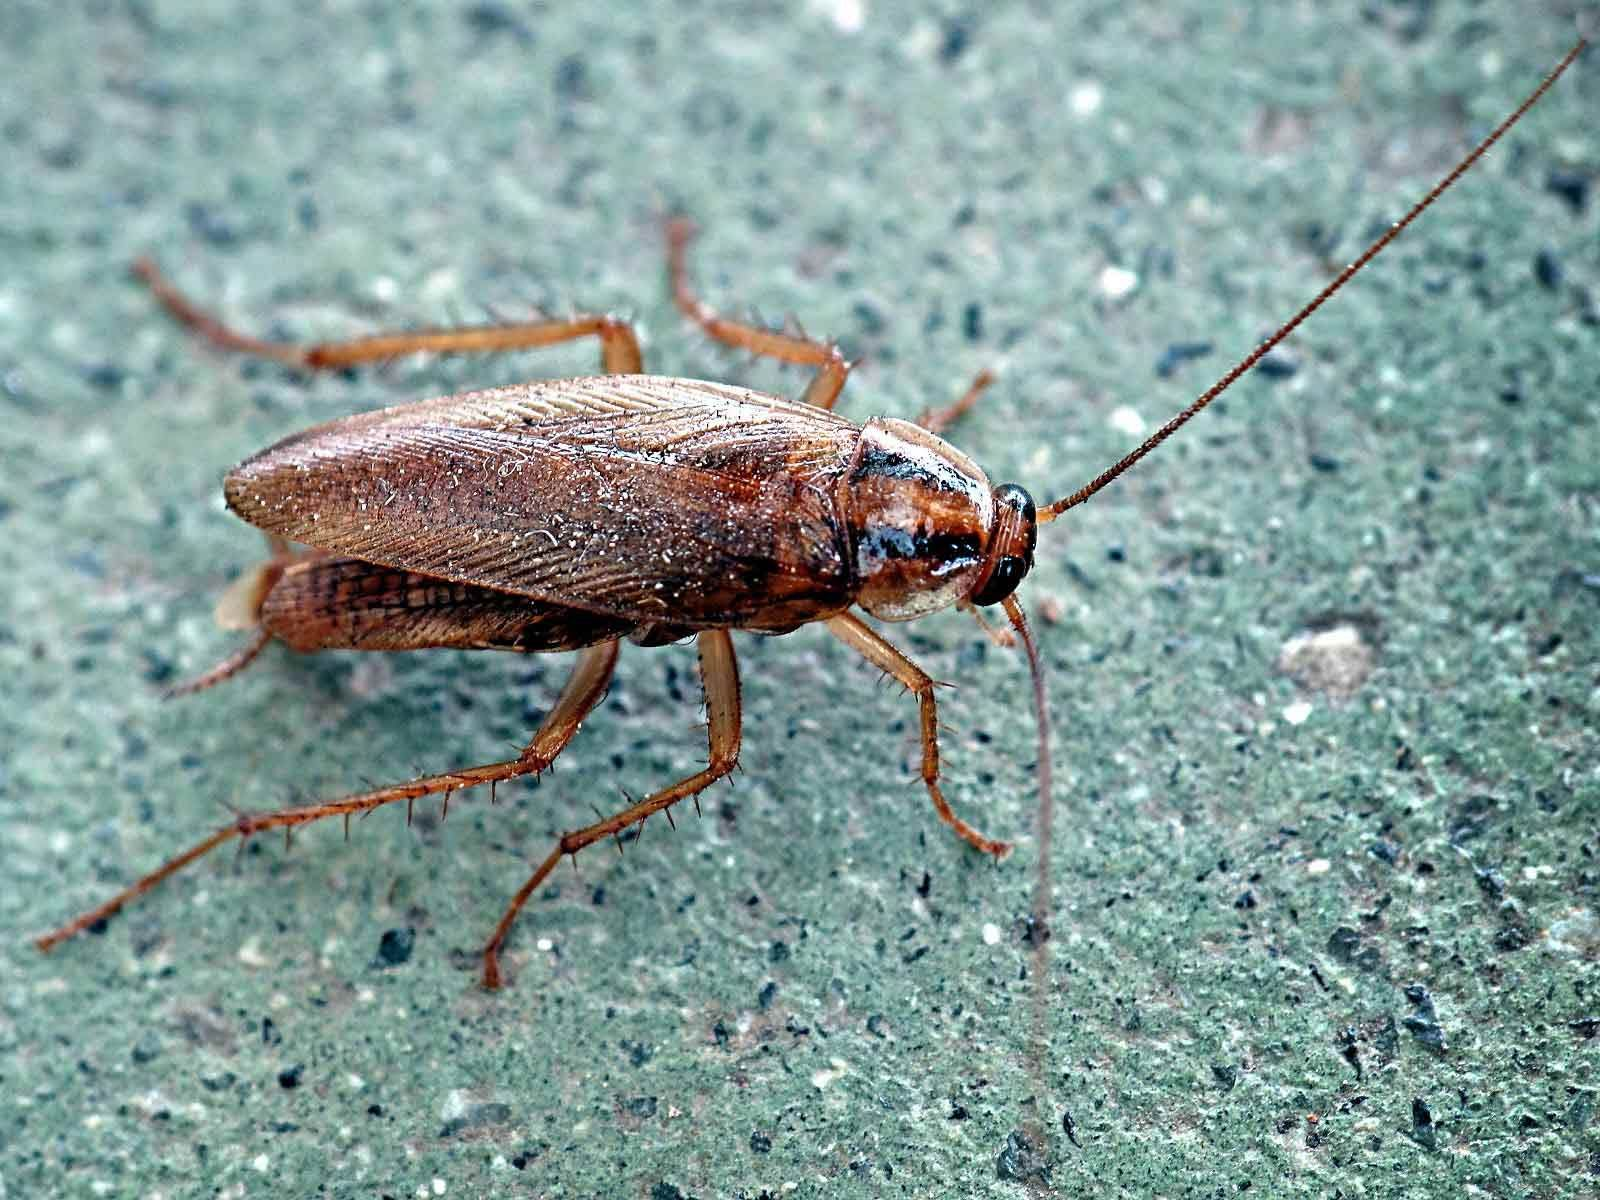 Cockroach extermination and control London for businesses